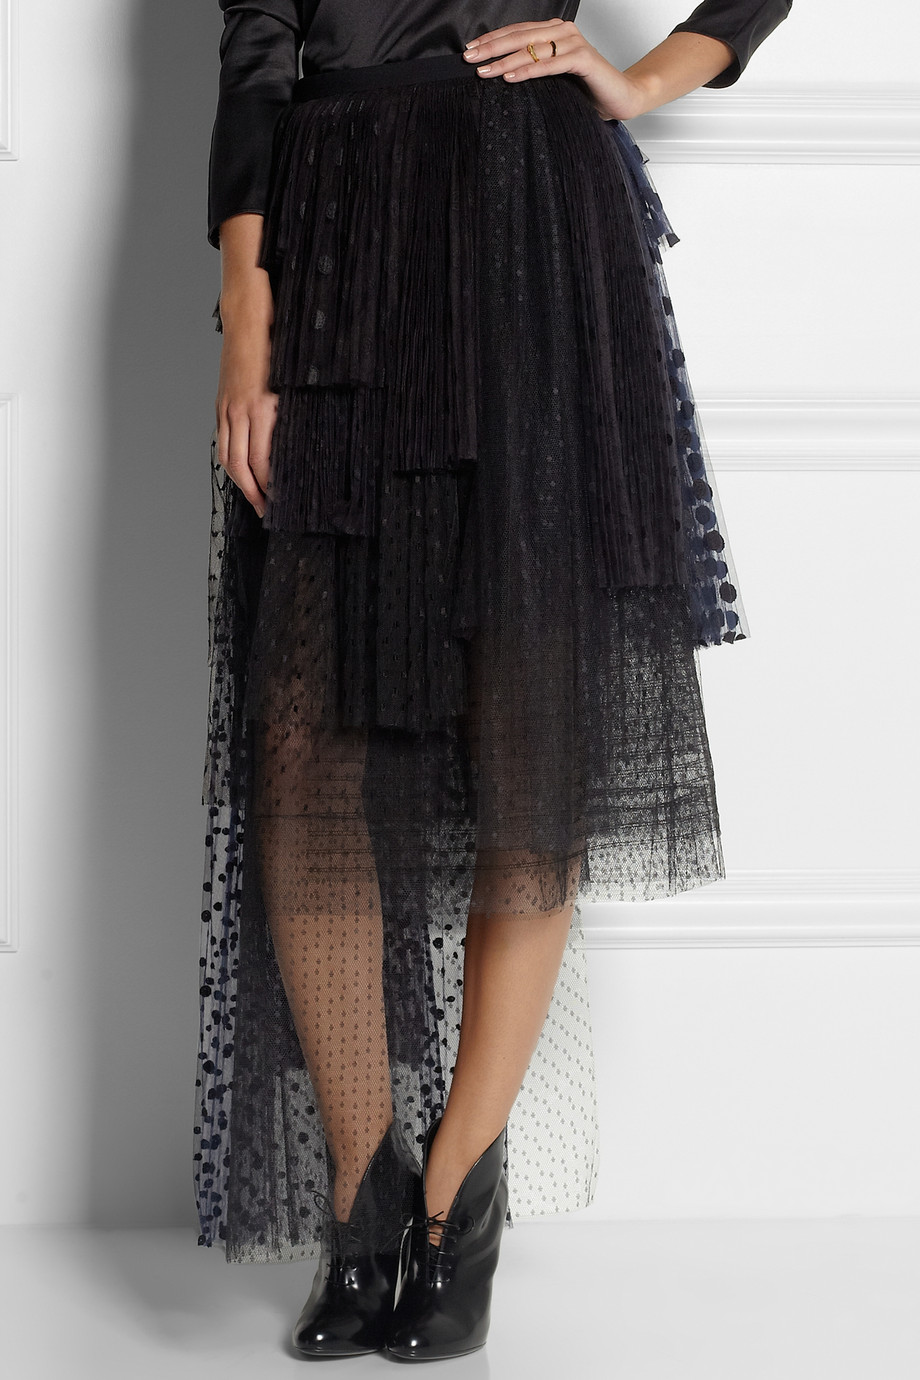 embroidered tulle black